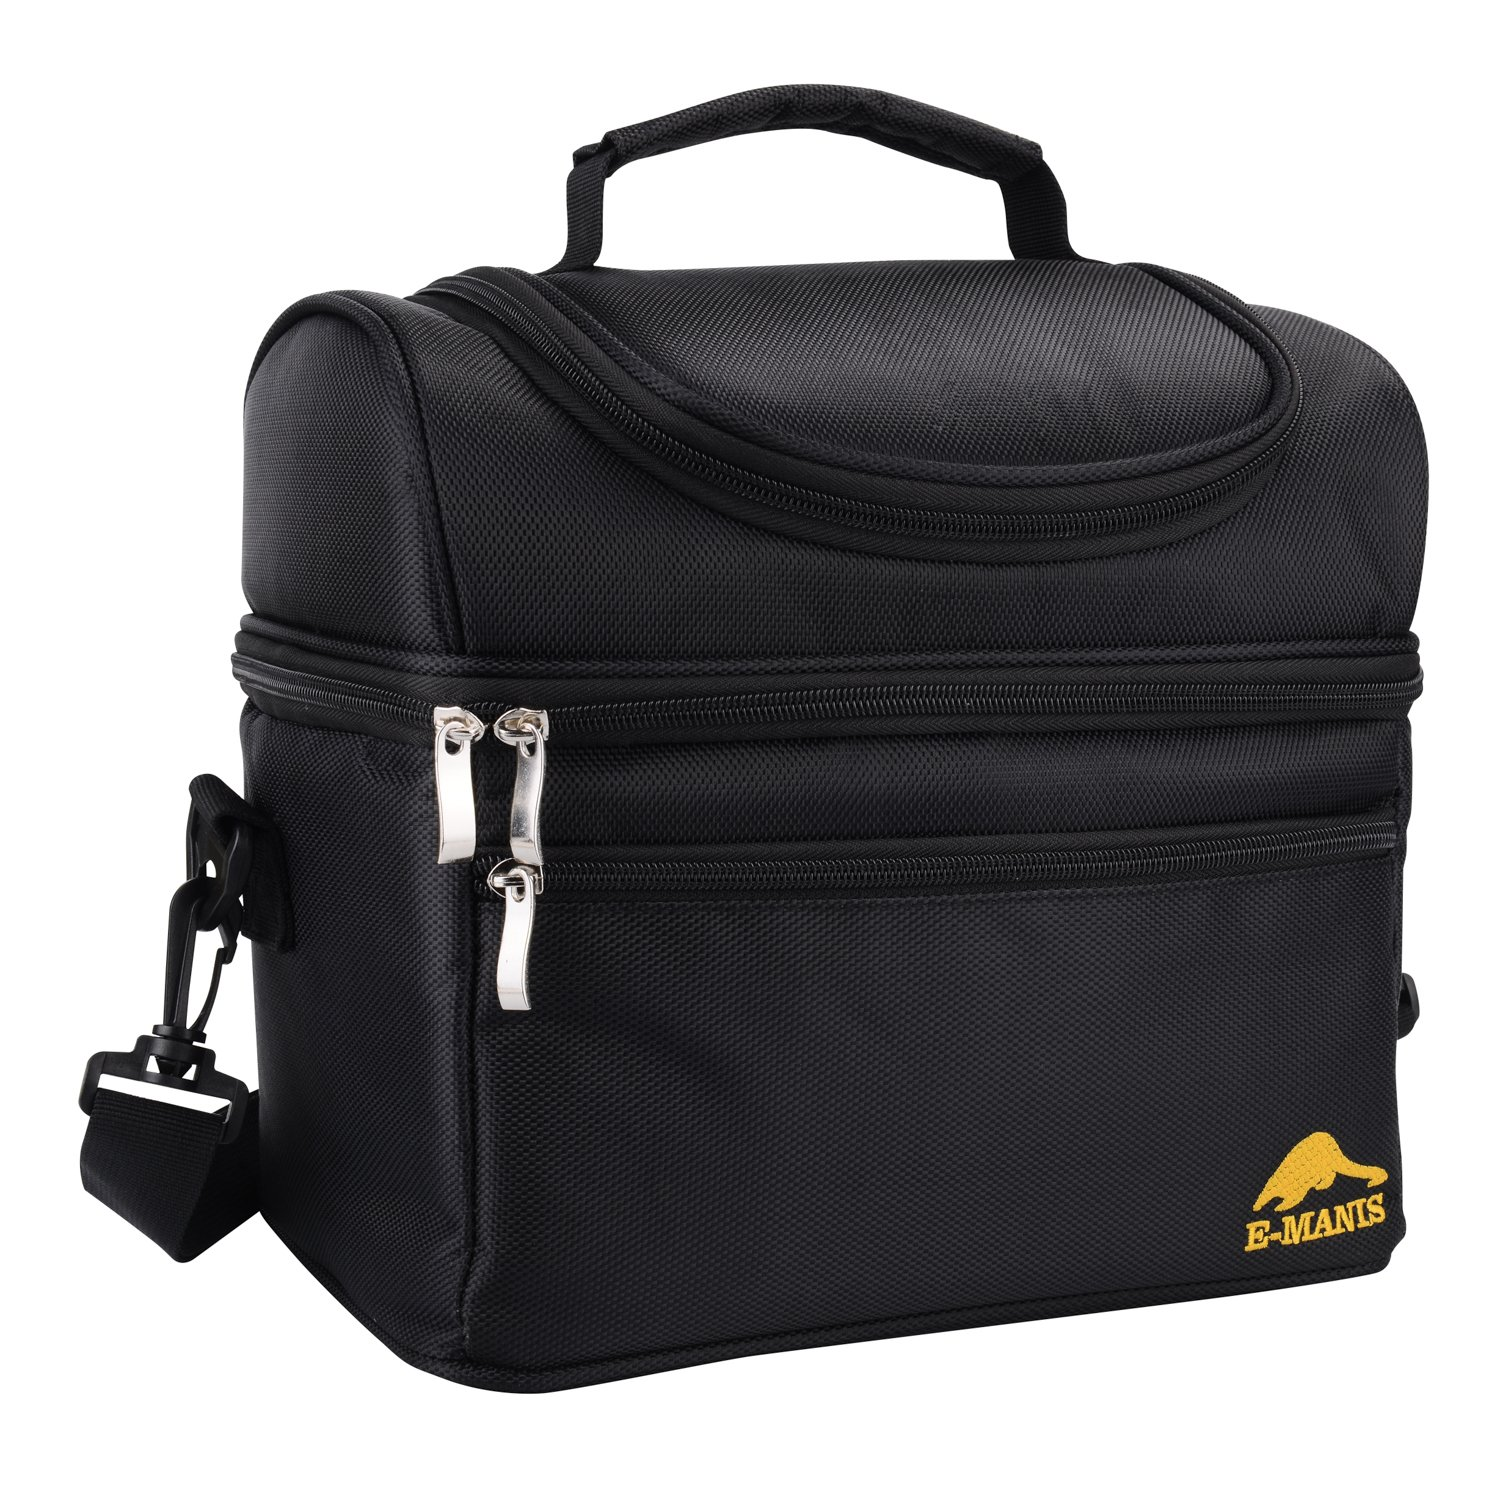 Lunch Bag Insulated Lunch Box Cooler 2 Way Zip Closure with Double Deck Large for Men Women Kids Black